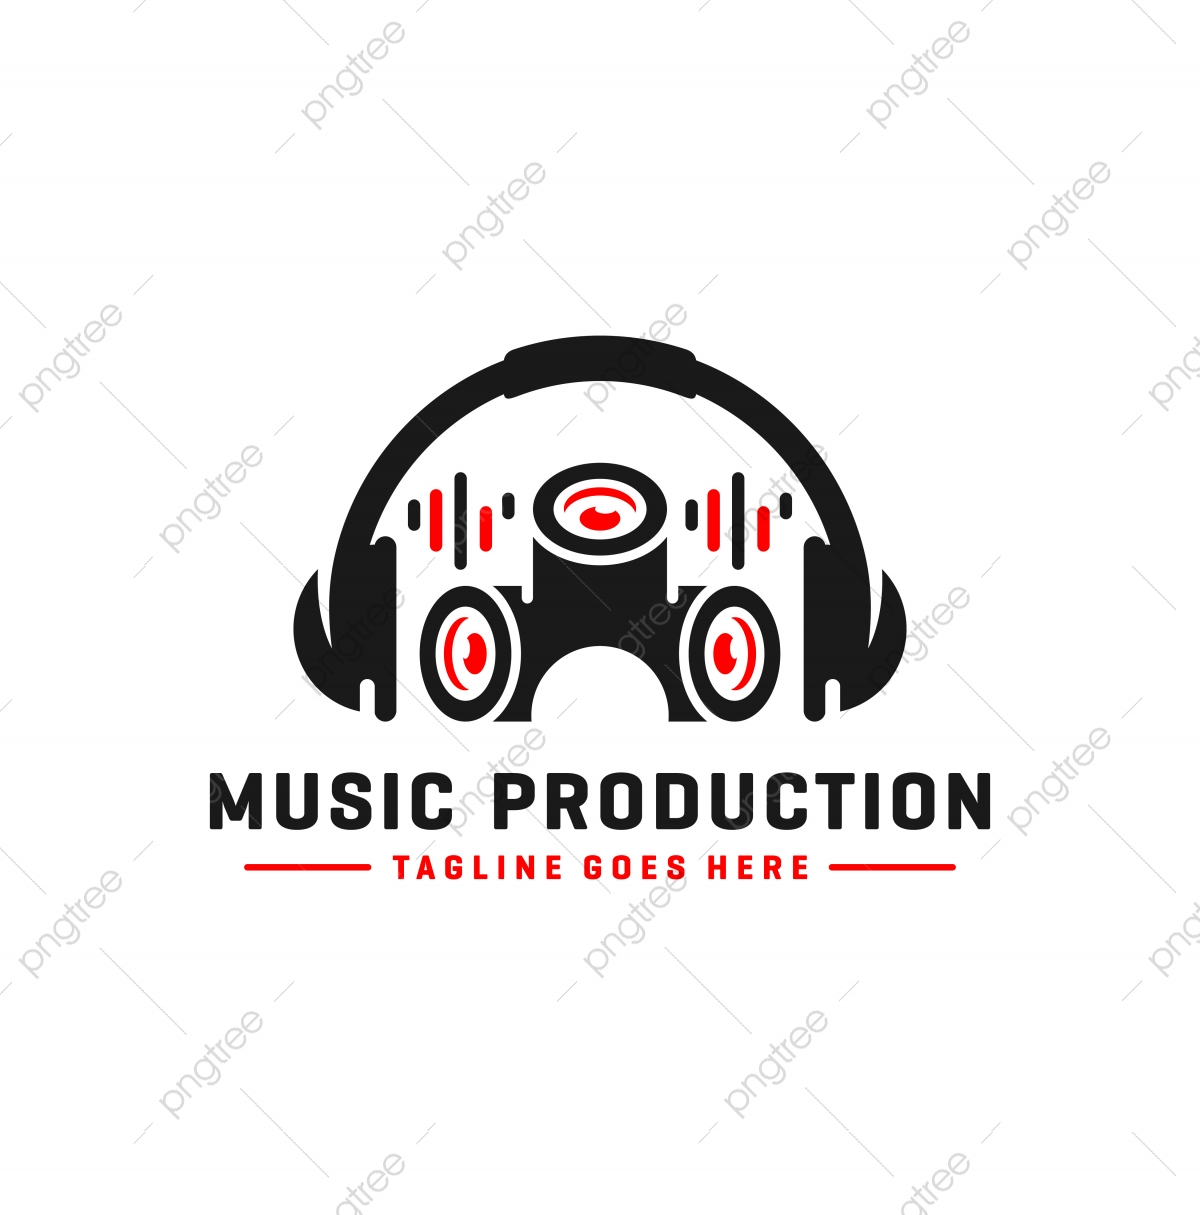 music logo png vector psd and clipart with transparent background for free download pngtree https pngtree com freepng music logo and headset 5448627 html